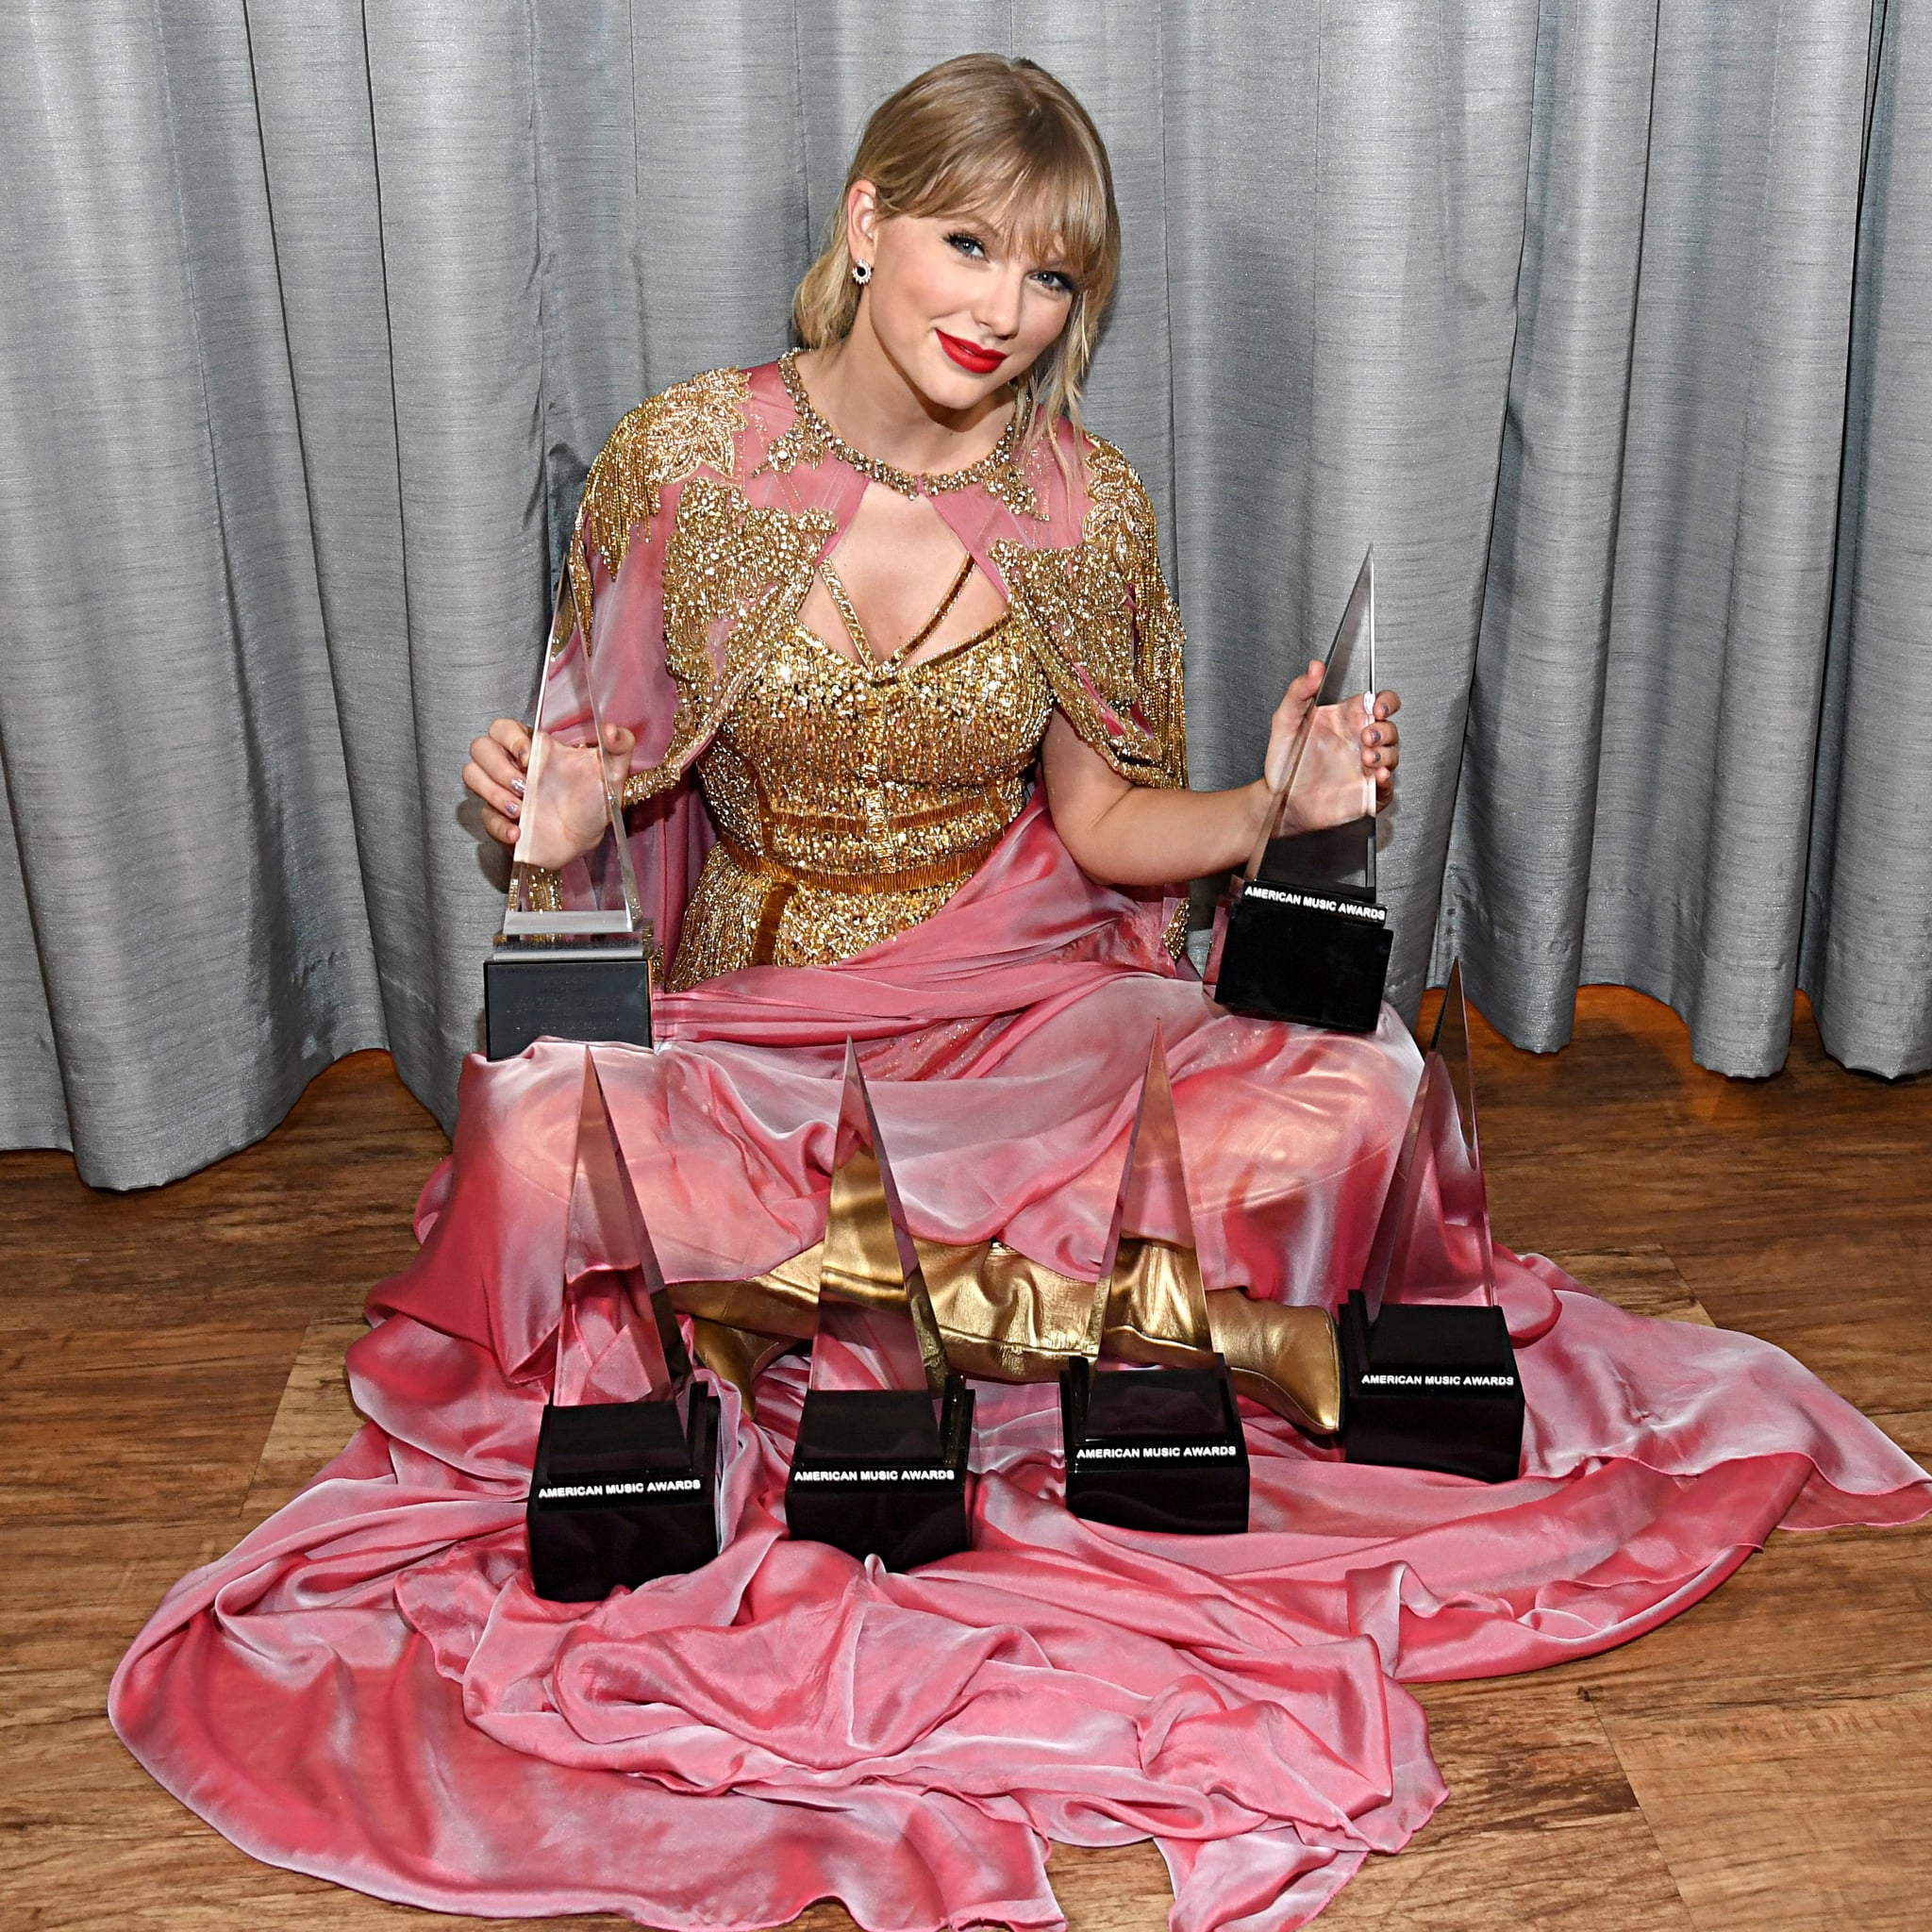 How Many American Music Awards Does Taylor Swift Have Popsugar Entertainment